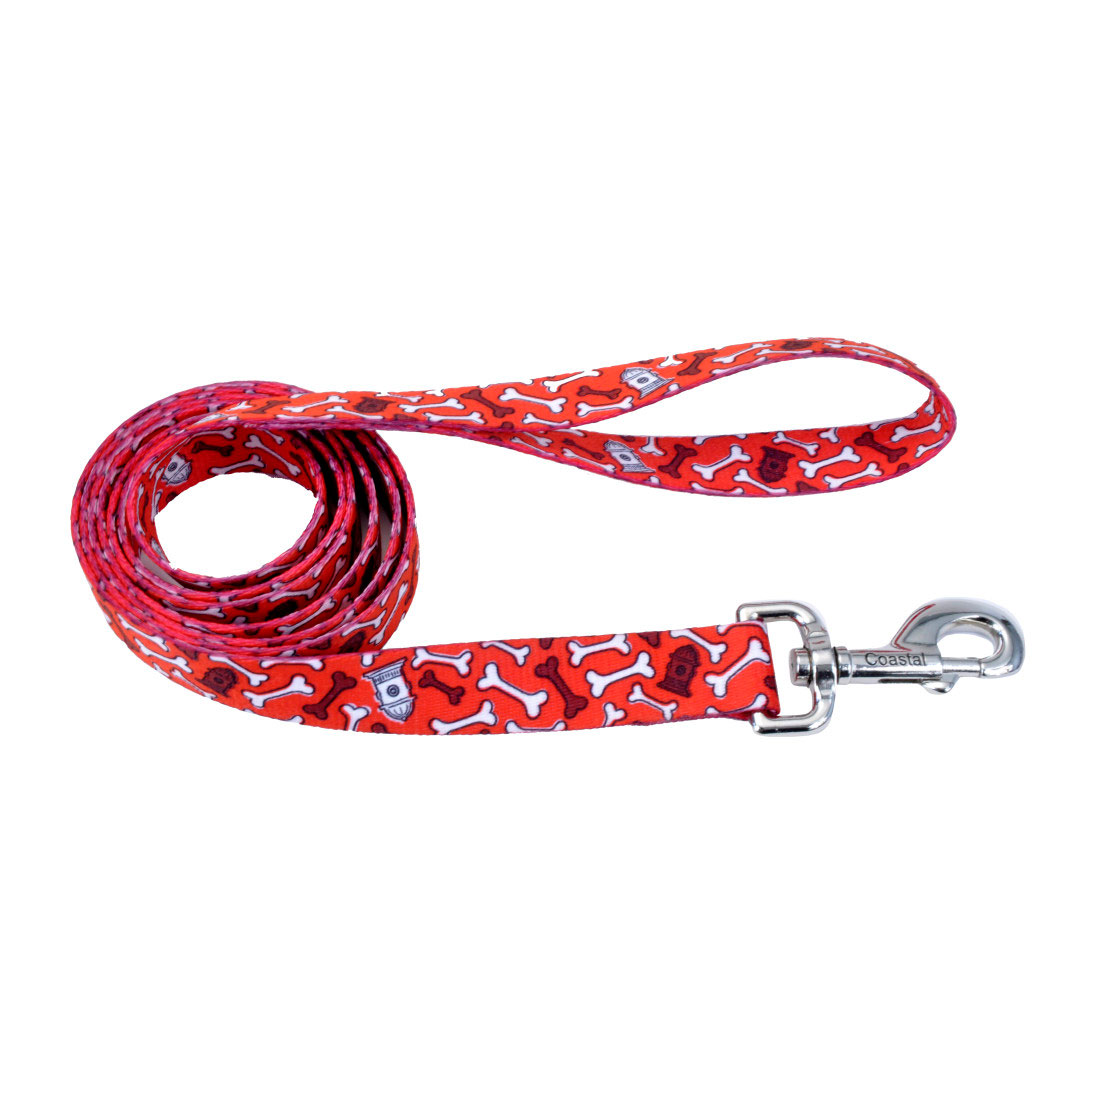 Coastal Attire Dog Leash Image